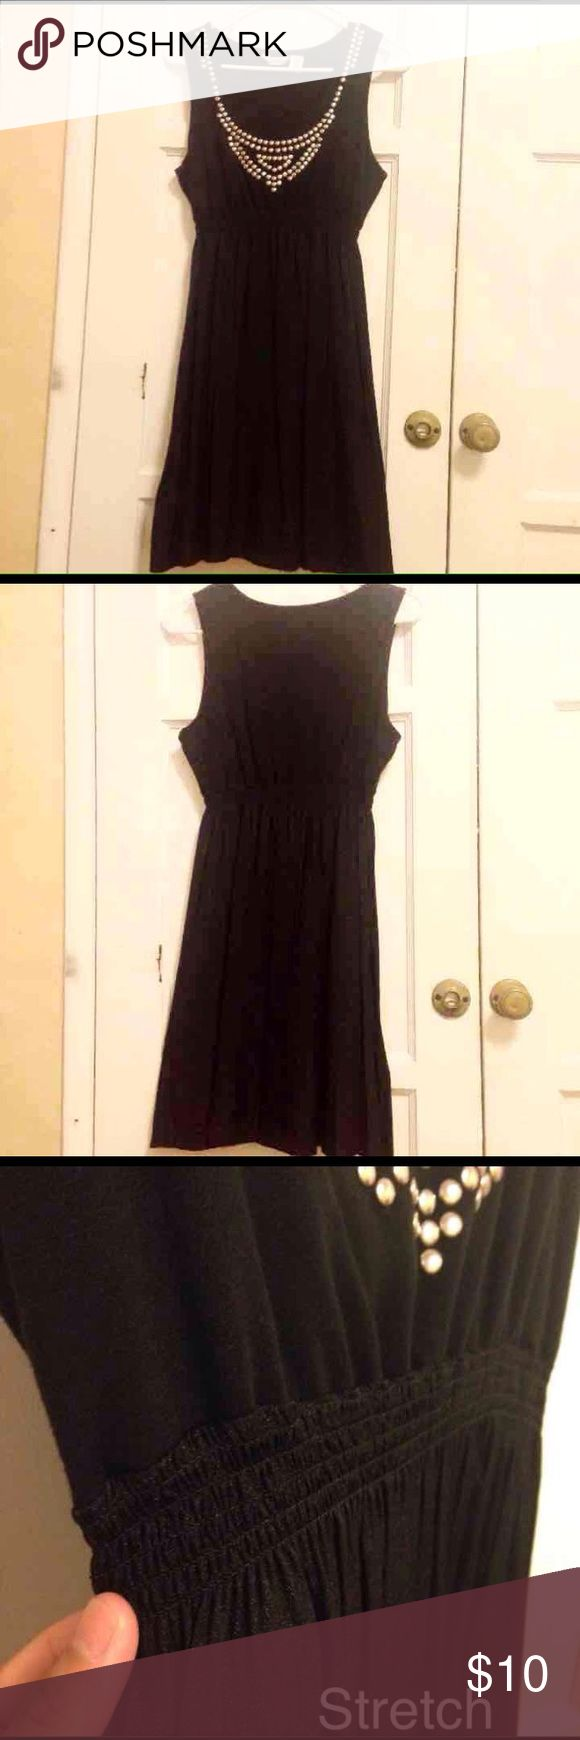 Black Dress for juniors My big sister brought it for me. Used it since I was young. I haven't used it for a long time. Excellent condition!  ⏺Size: Large  ⏺Fit size: Medium Dresses